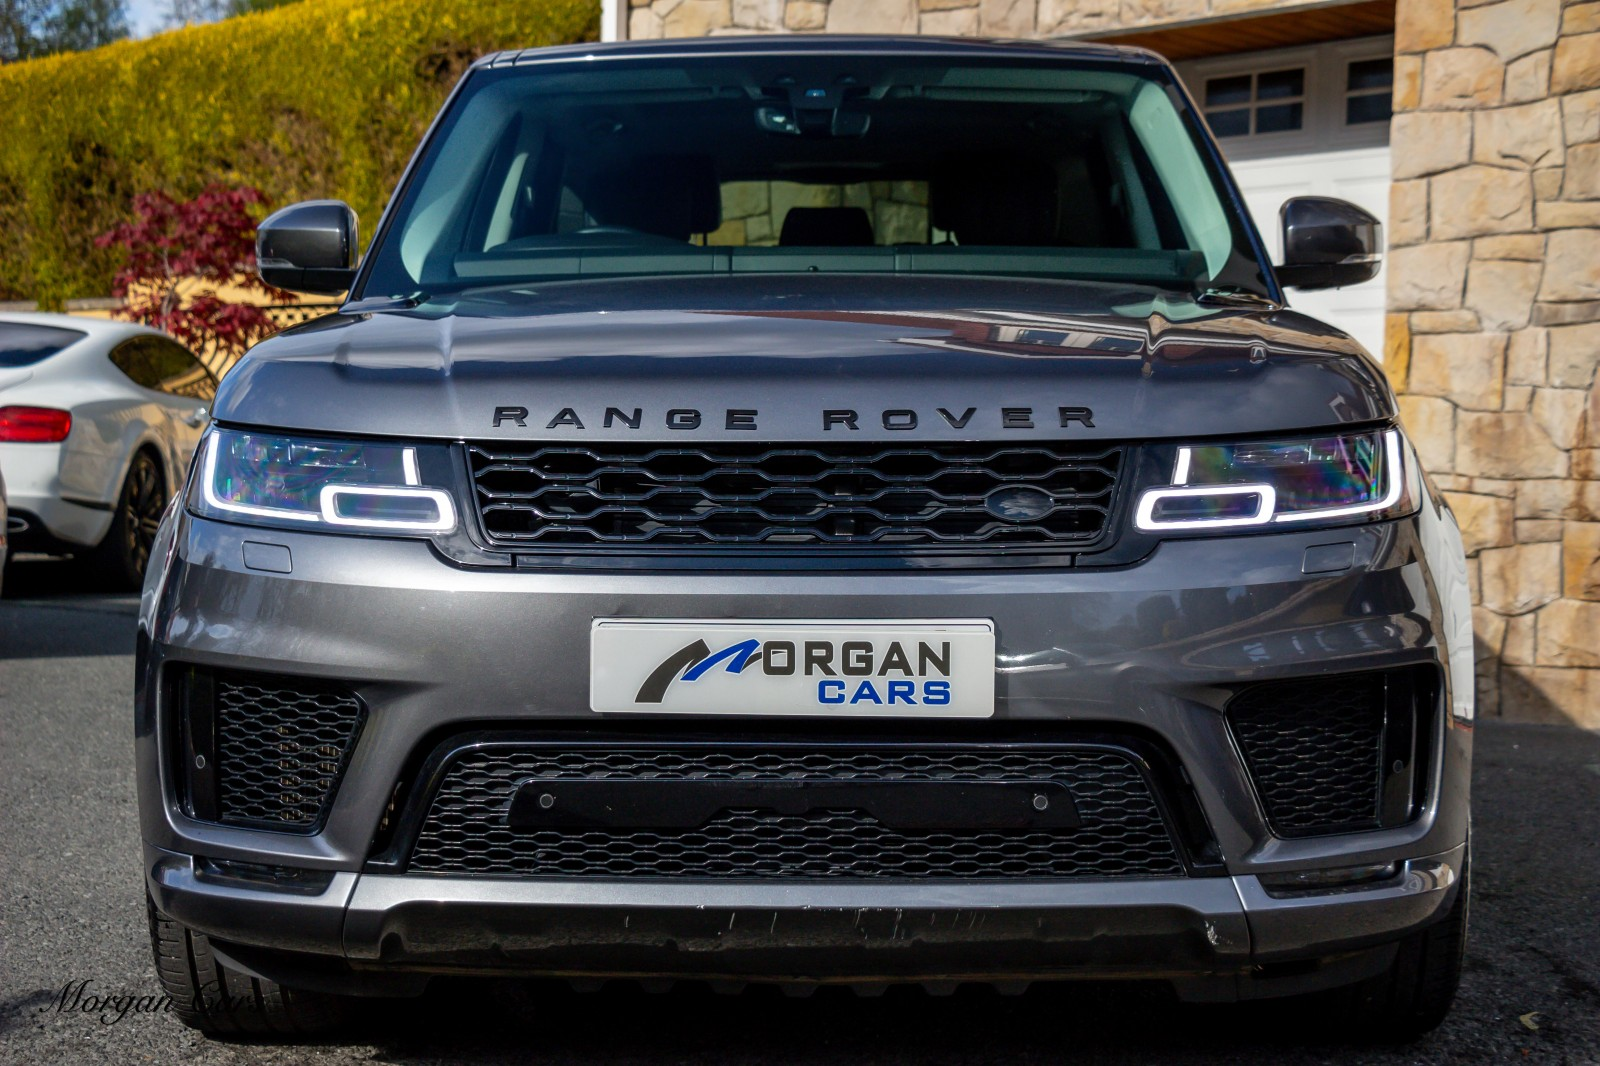 2018 Land Rover Range Rover Sport SDV6 HSE DYNAMIC Diesel Automatic – Morgan Cars 9 Mound Road, Warrenpoint, Newry BT34 3LW, UK full